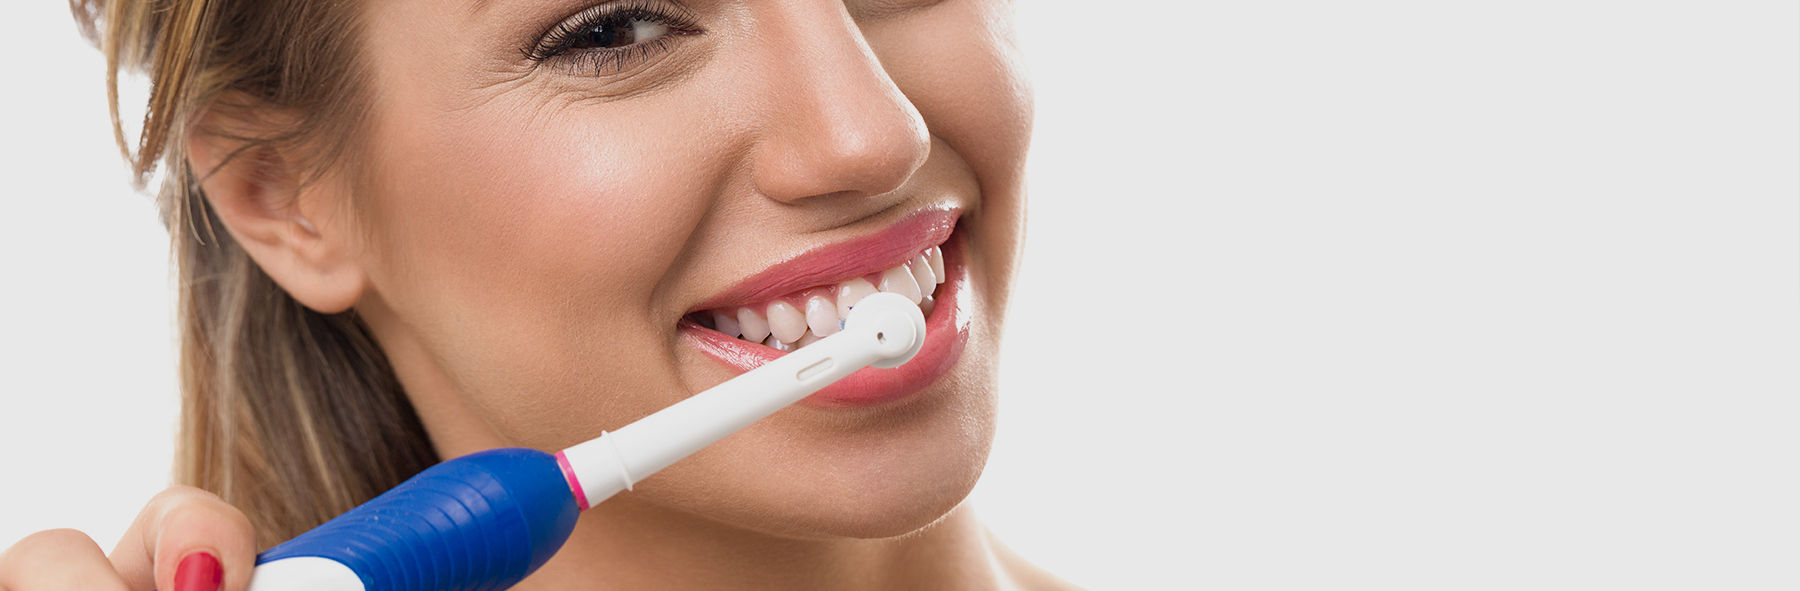 Our guide to tooth brushing